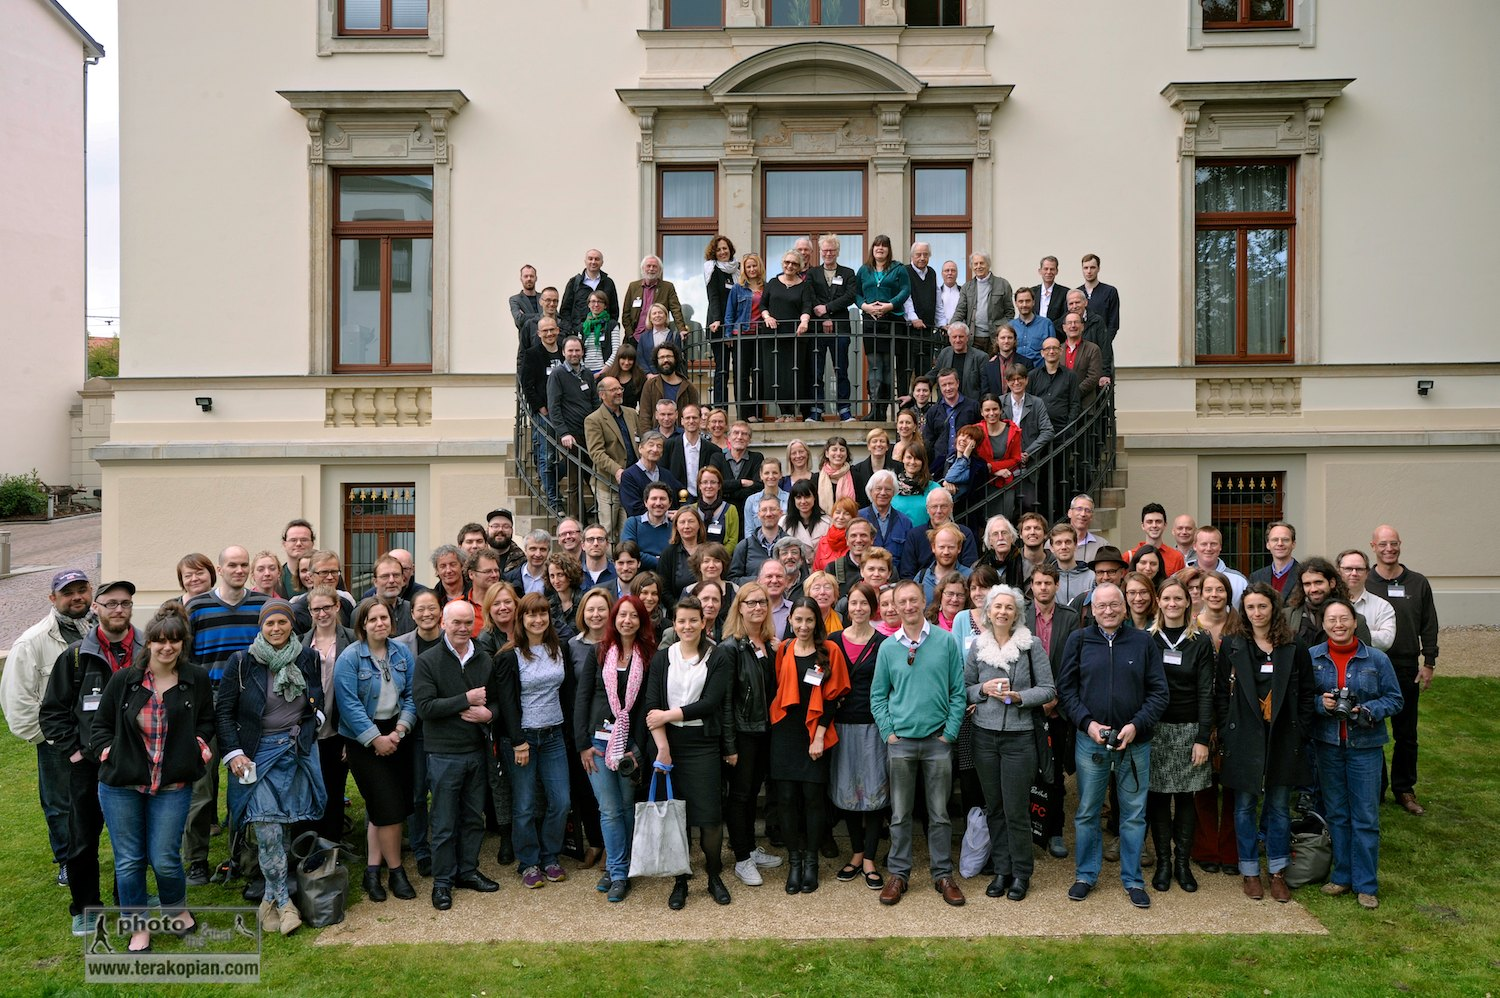 IFC Leipzig 2014 Group Shot. IFC (International Features Conference), Media Campus (Medienstifftung der Sparkasse Leipzig), Poetenweg, Leipzig, Germany. May 14, 2014. Photo: Photo: Bernd Cramer/MDR